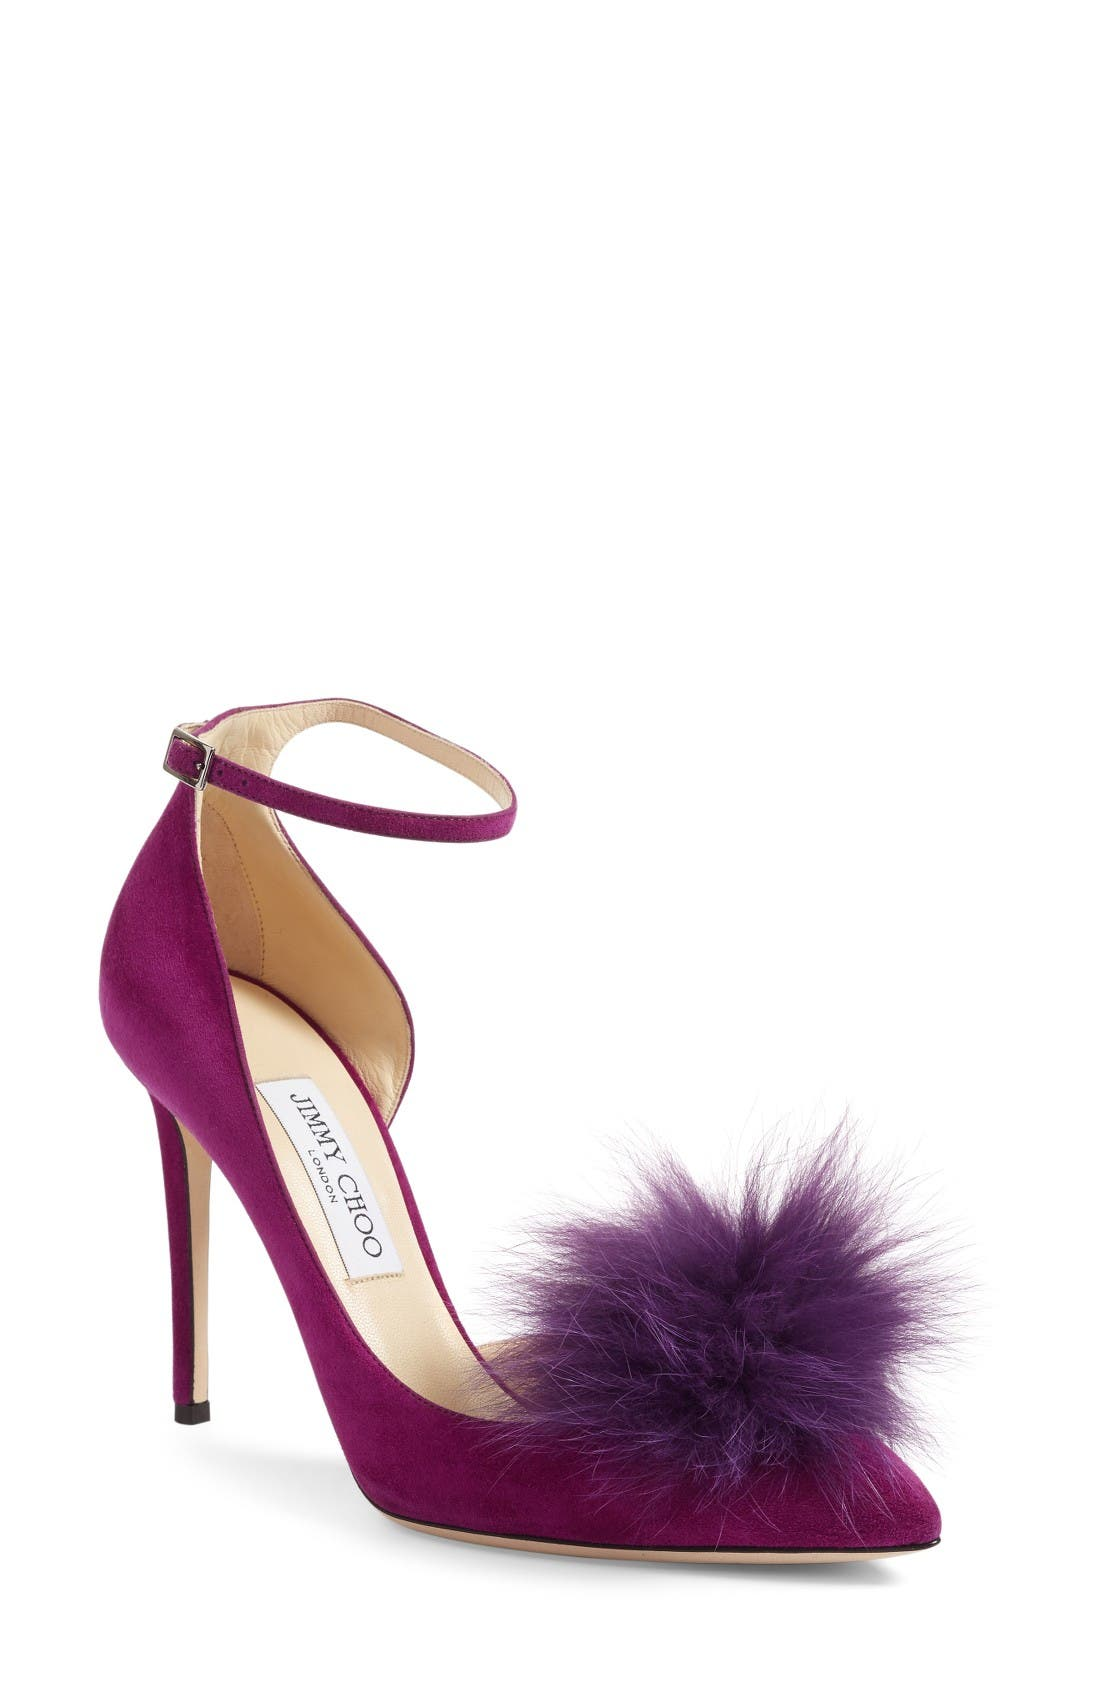 Alternate Image 1 Selected - Jimmy Choo Rosa Pump with Genuine Fox Fur Pom Charm (Women)